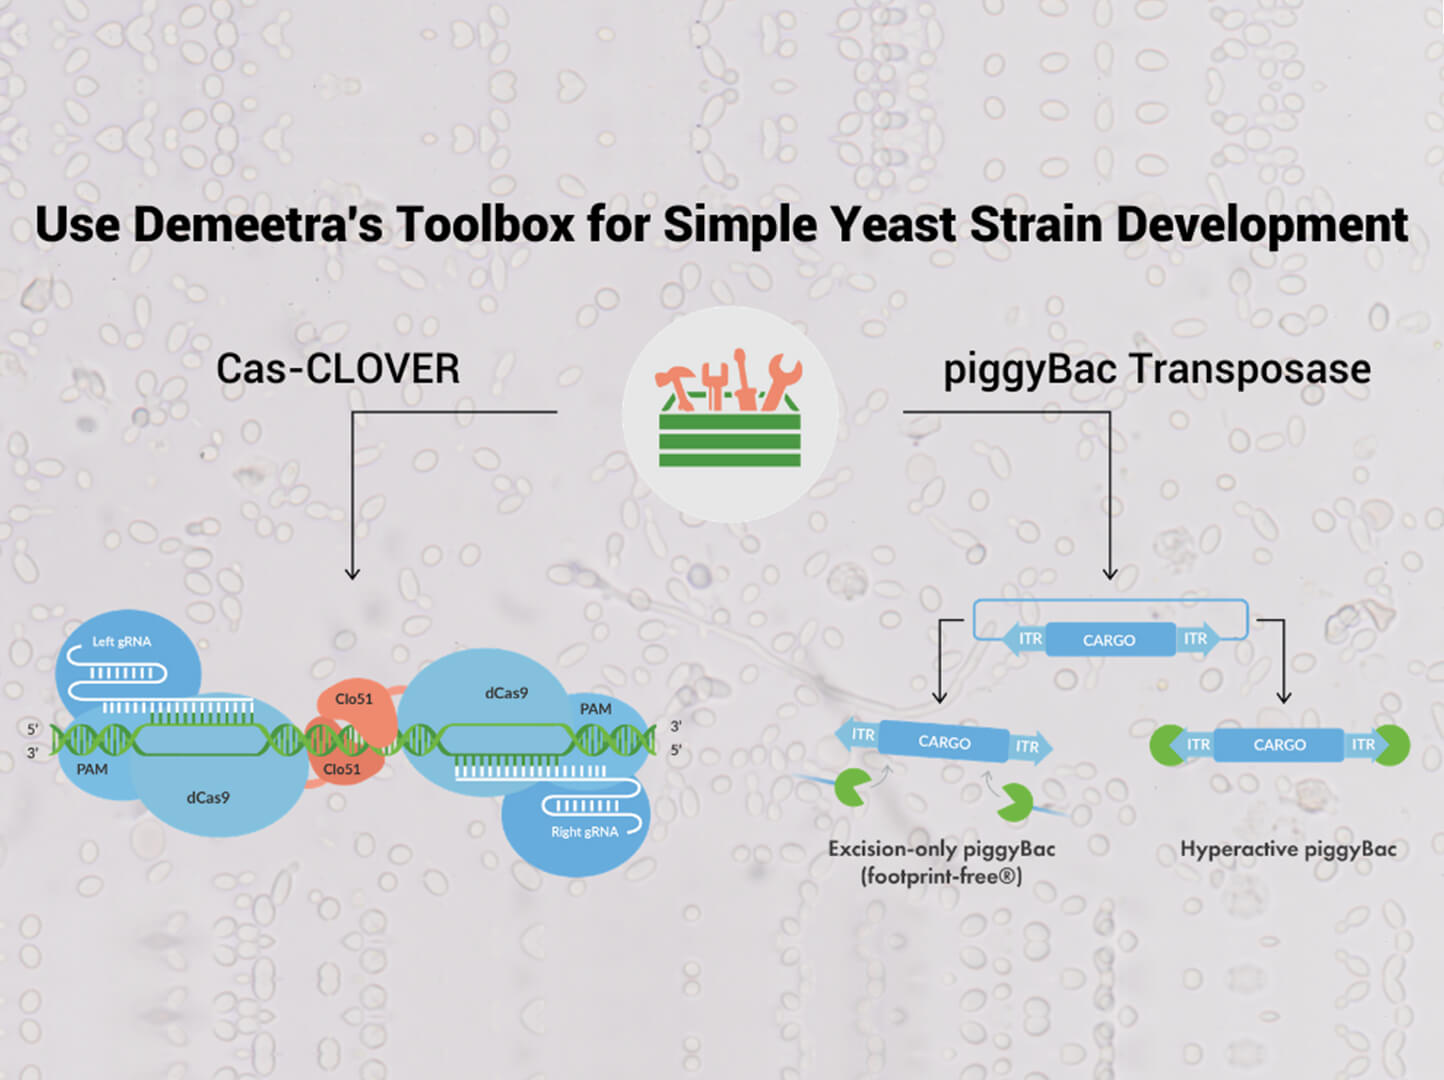 """a chart explaining Cas-CLOVER and piggyBac Transposase titled """"Use Demeetra's Toolbox for Simple Yeast Strain Development"""" (1370 x 1024)"""